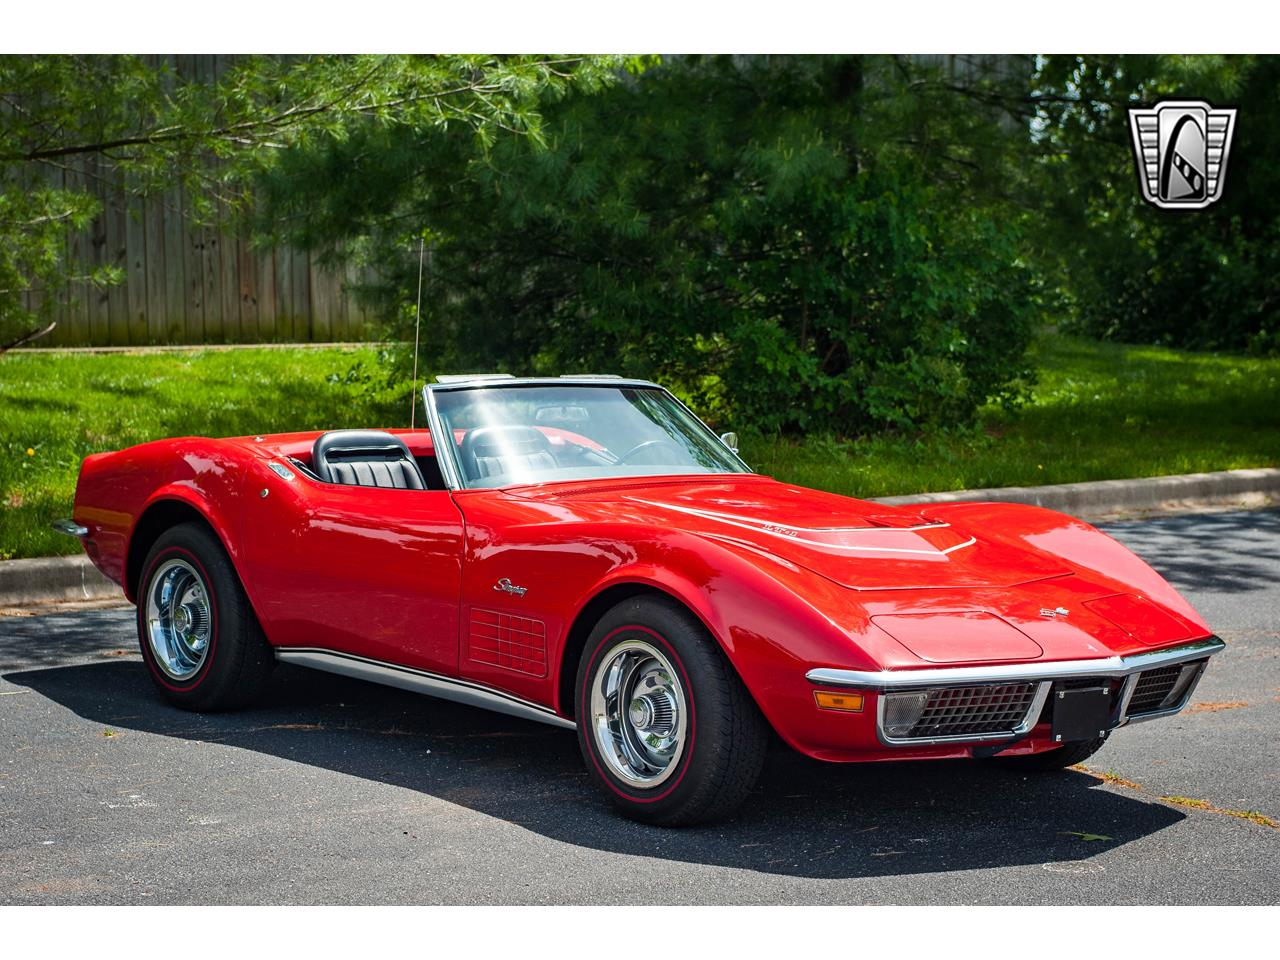 Large Picture of 1971 Chevrolet Corvette located in Illinois Offered by Gateway Classic Cars - St. Louis - QB9M